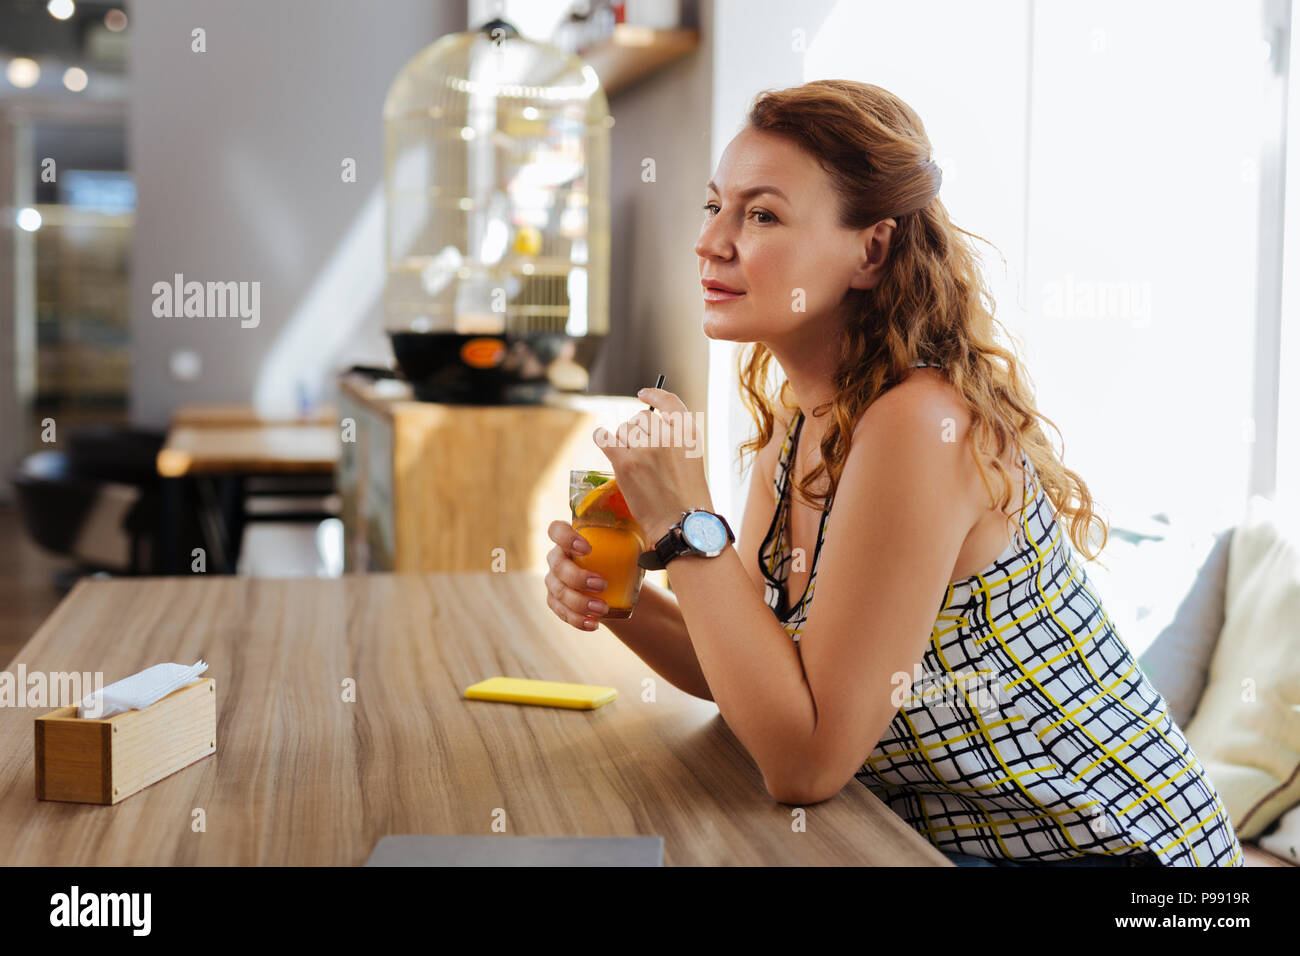 Beautiful woman with wavy hair waiting for her man - Stock Image